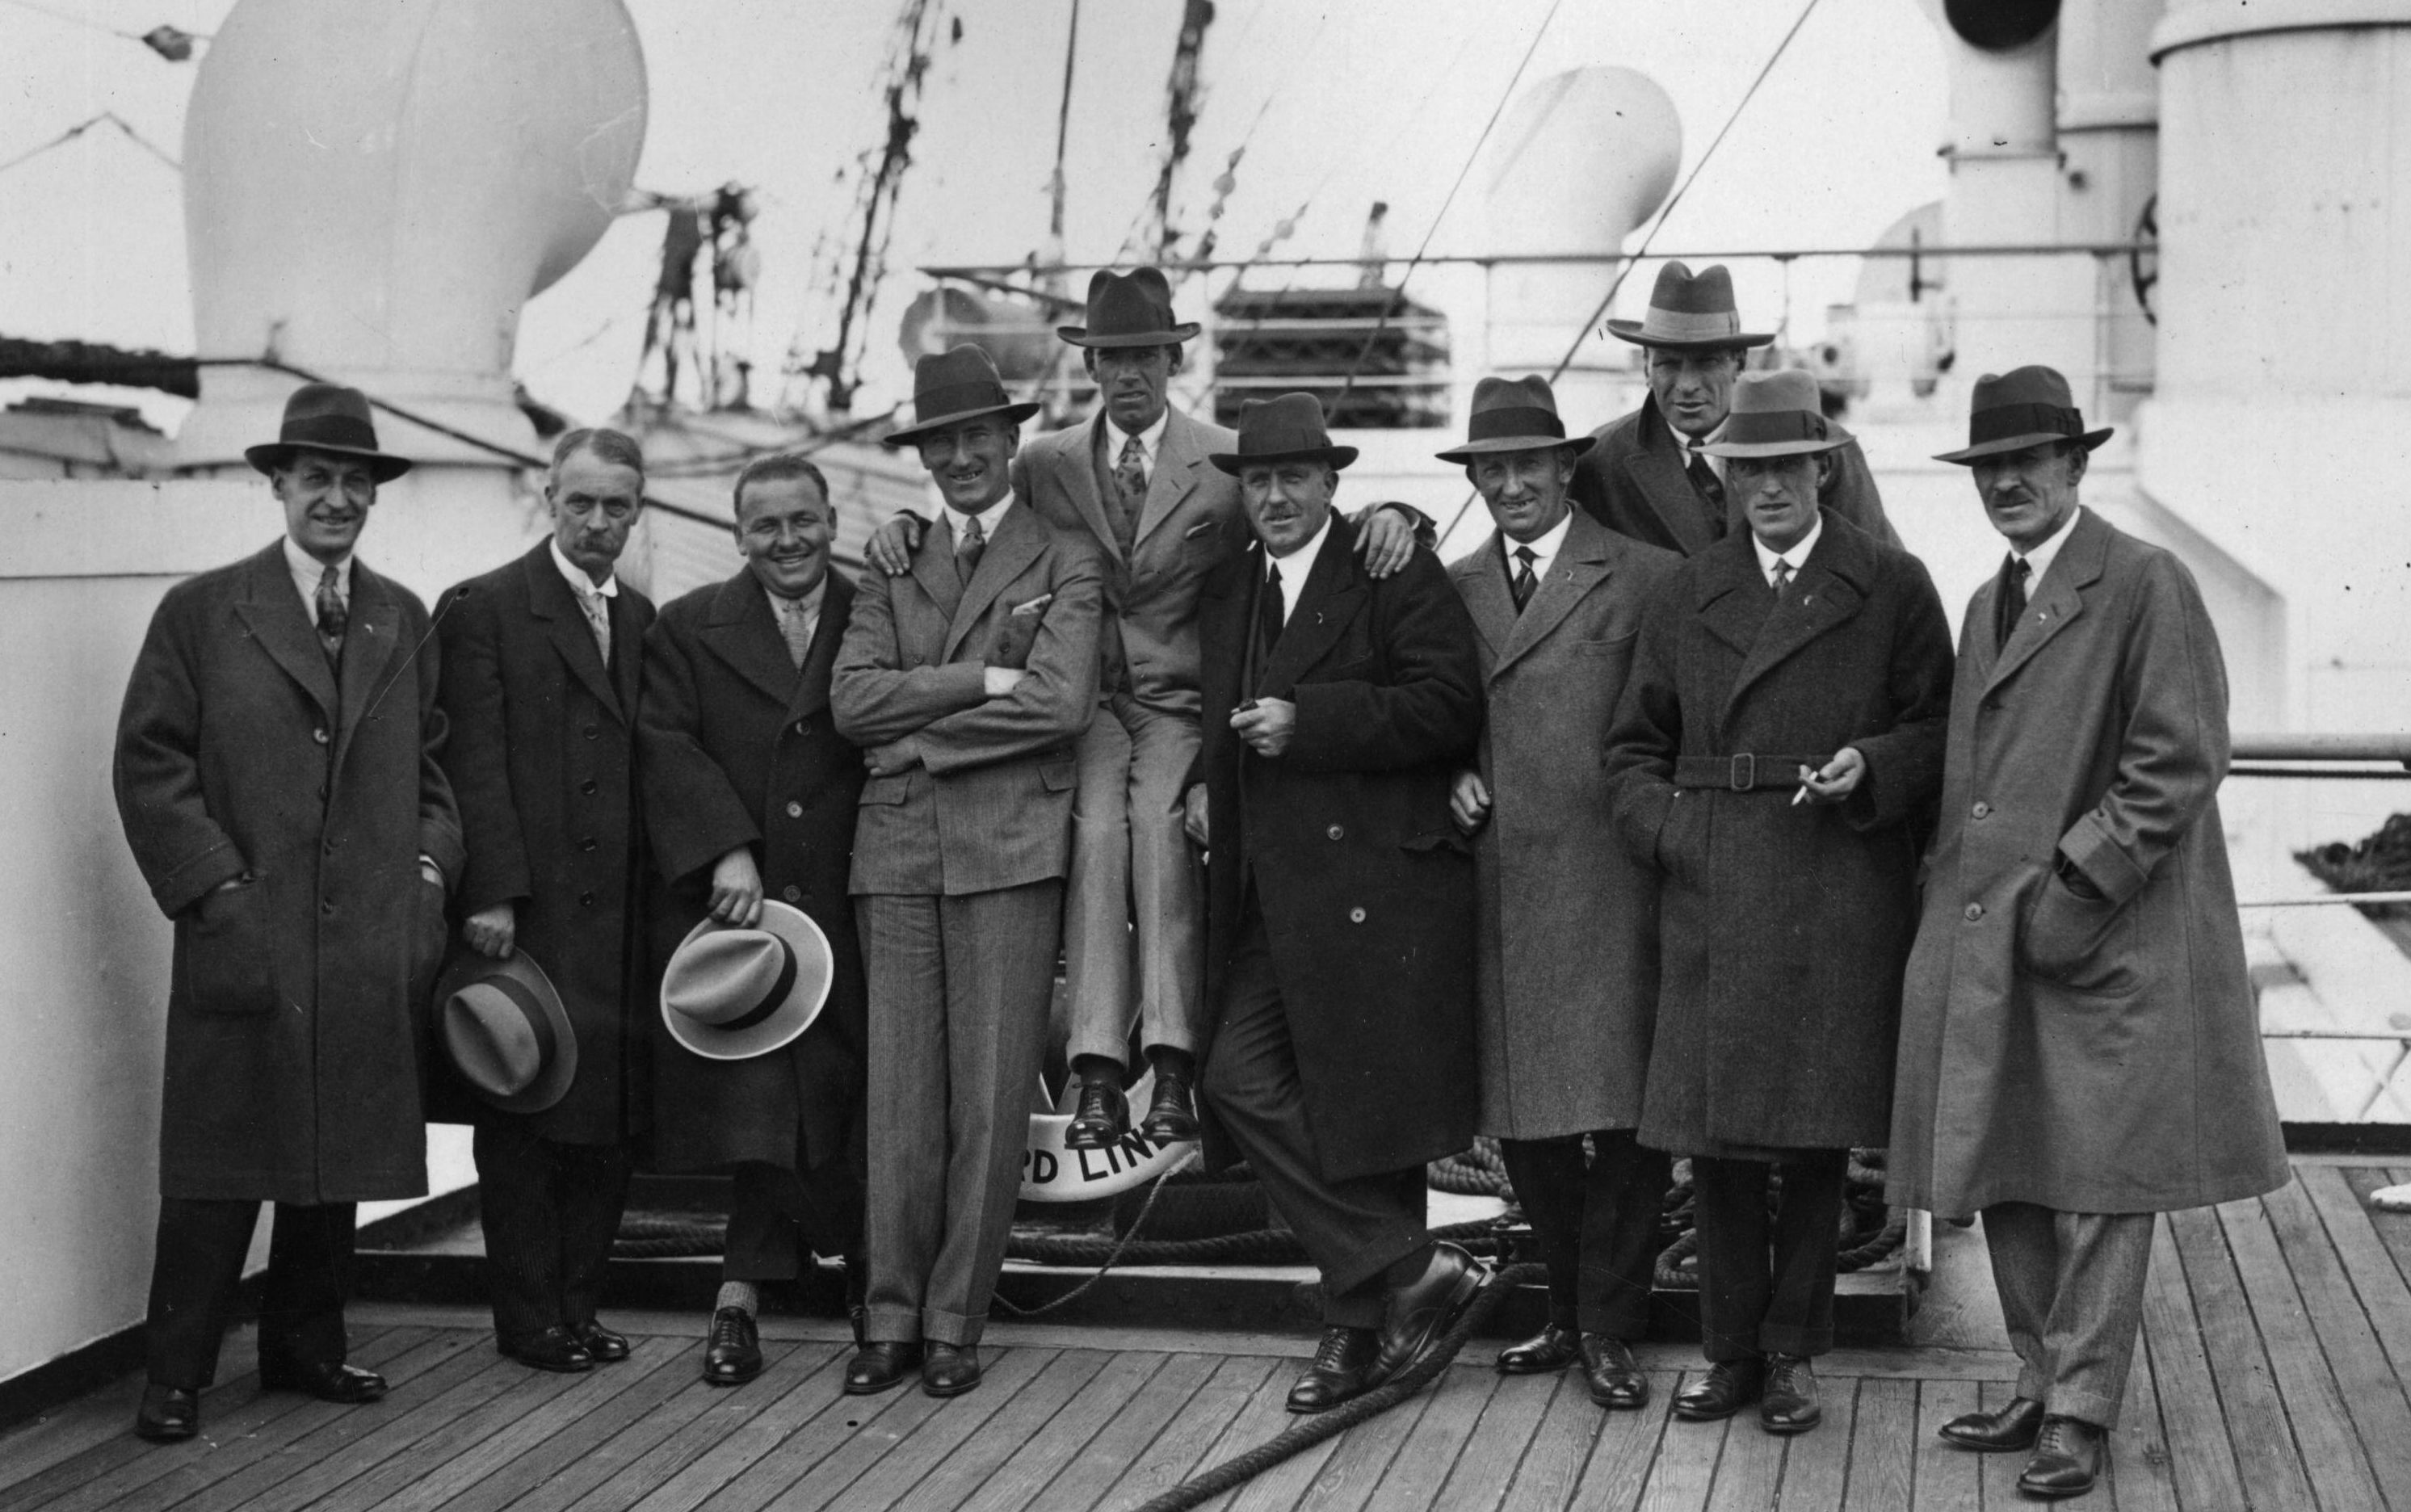 The Great Britain Ryder Cup set sail  for the first tournament in America in 1927